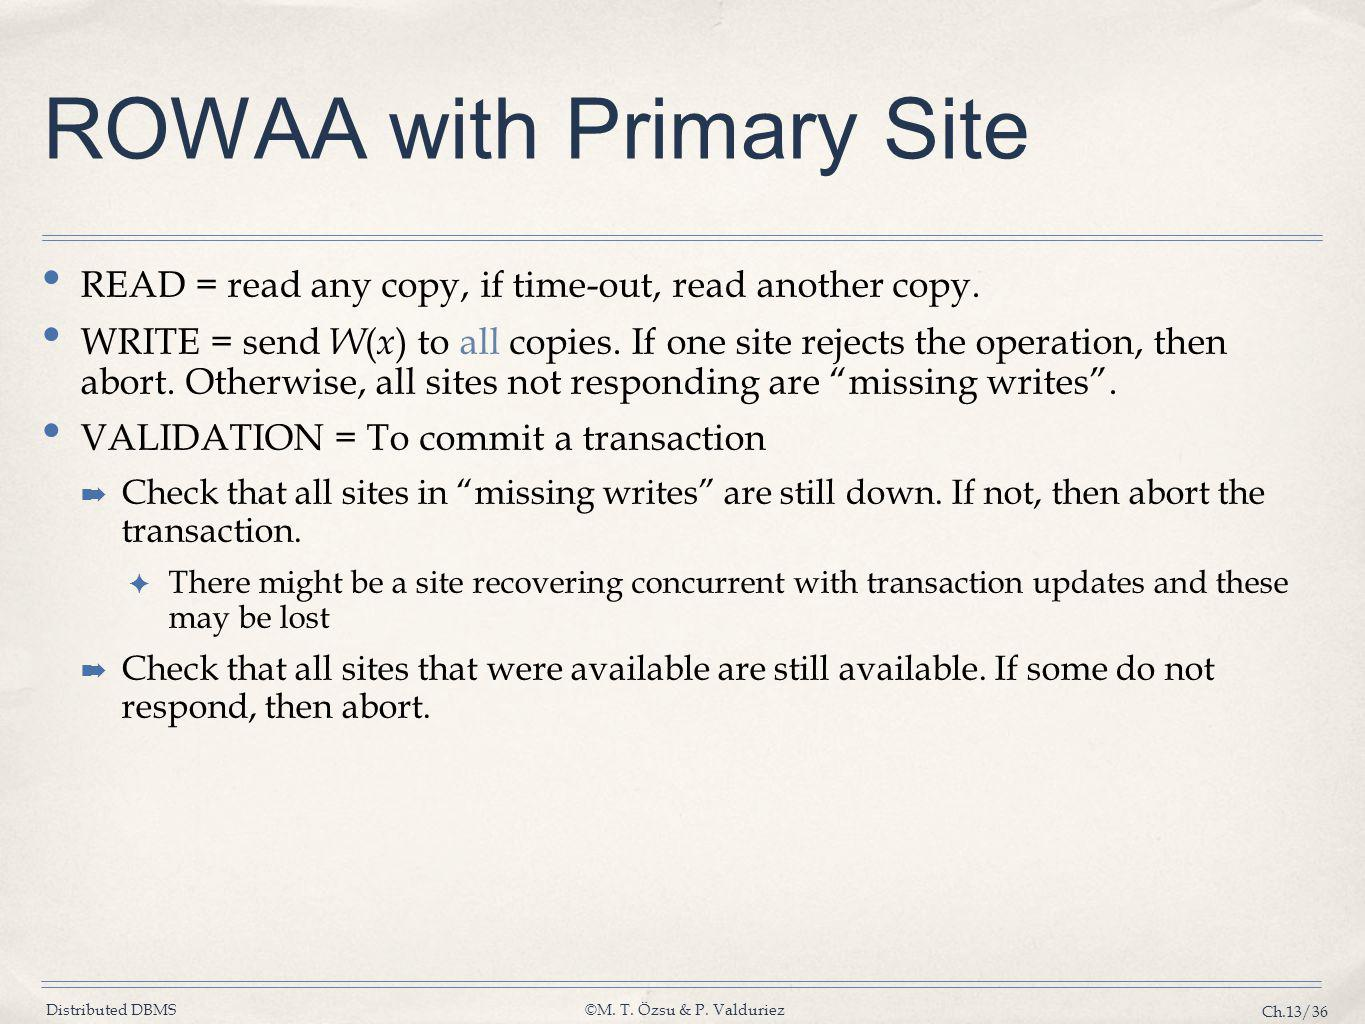 ROWAA with Primary Site